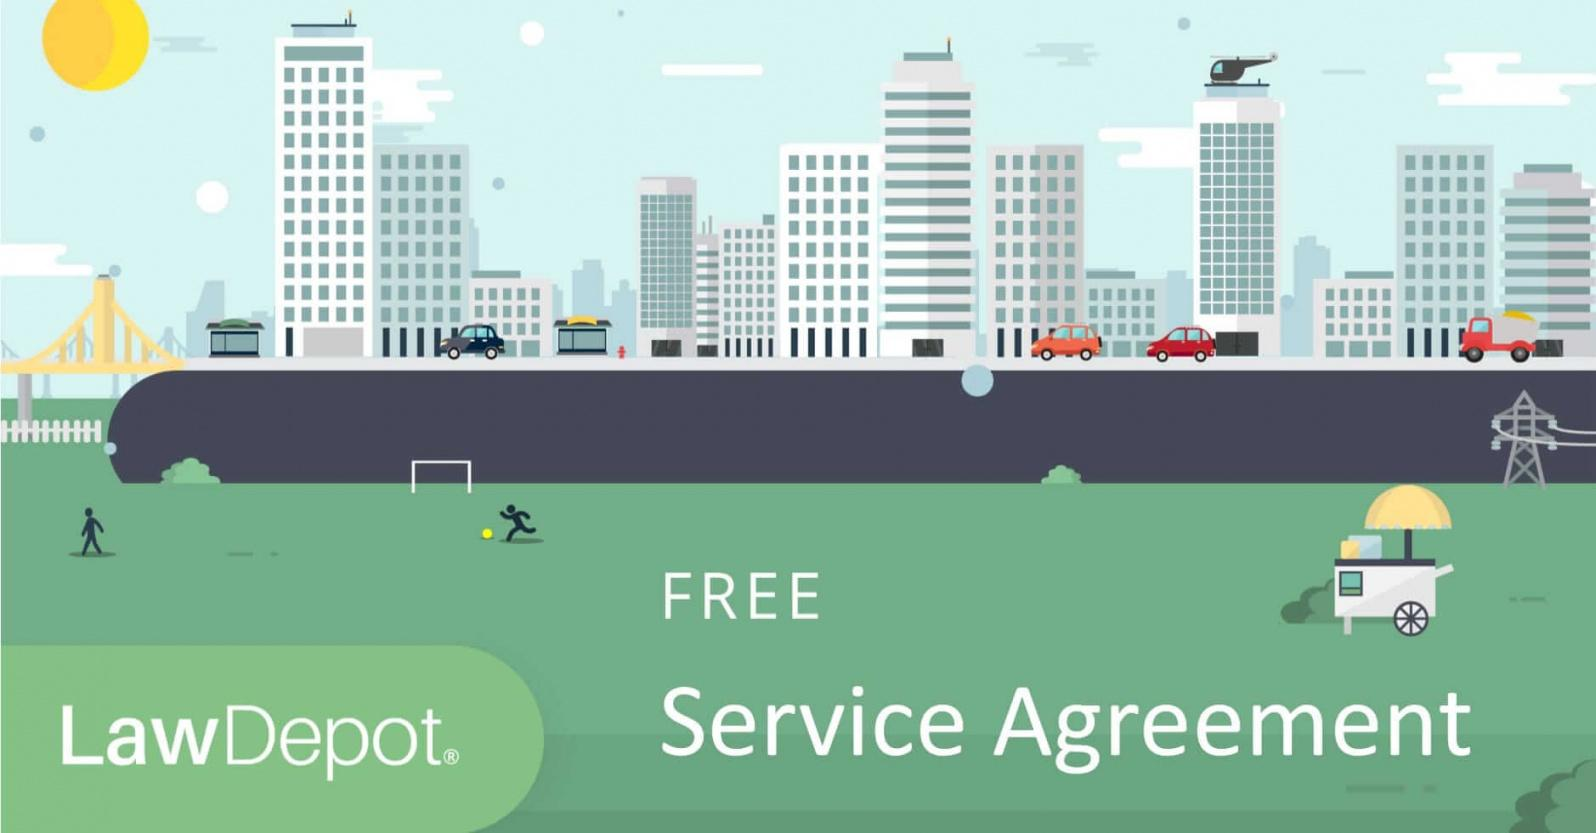 our service agreement form  free service contract template (us)  lawdepot courier service contract agreement